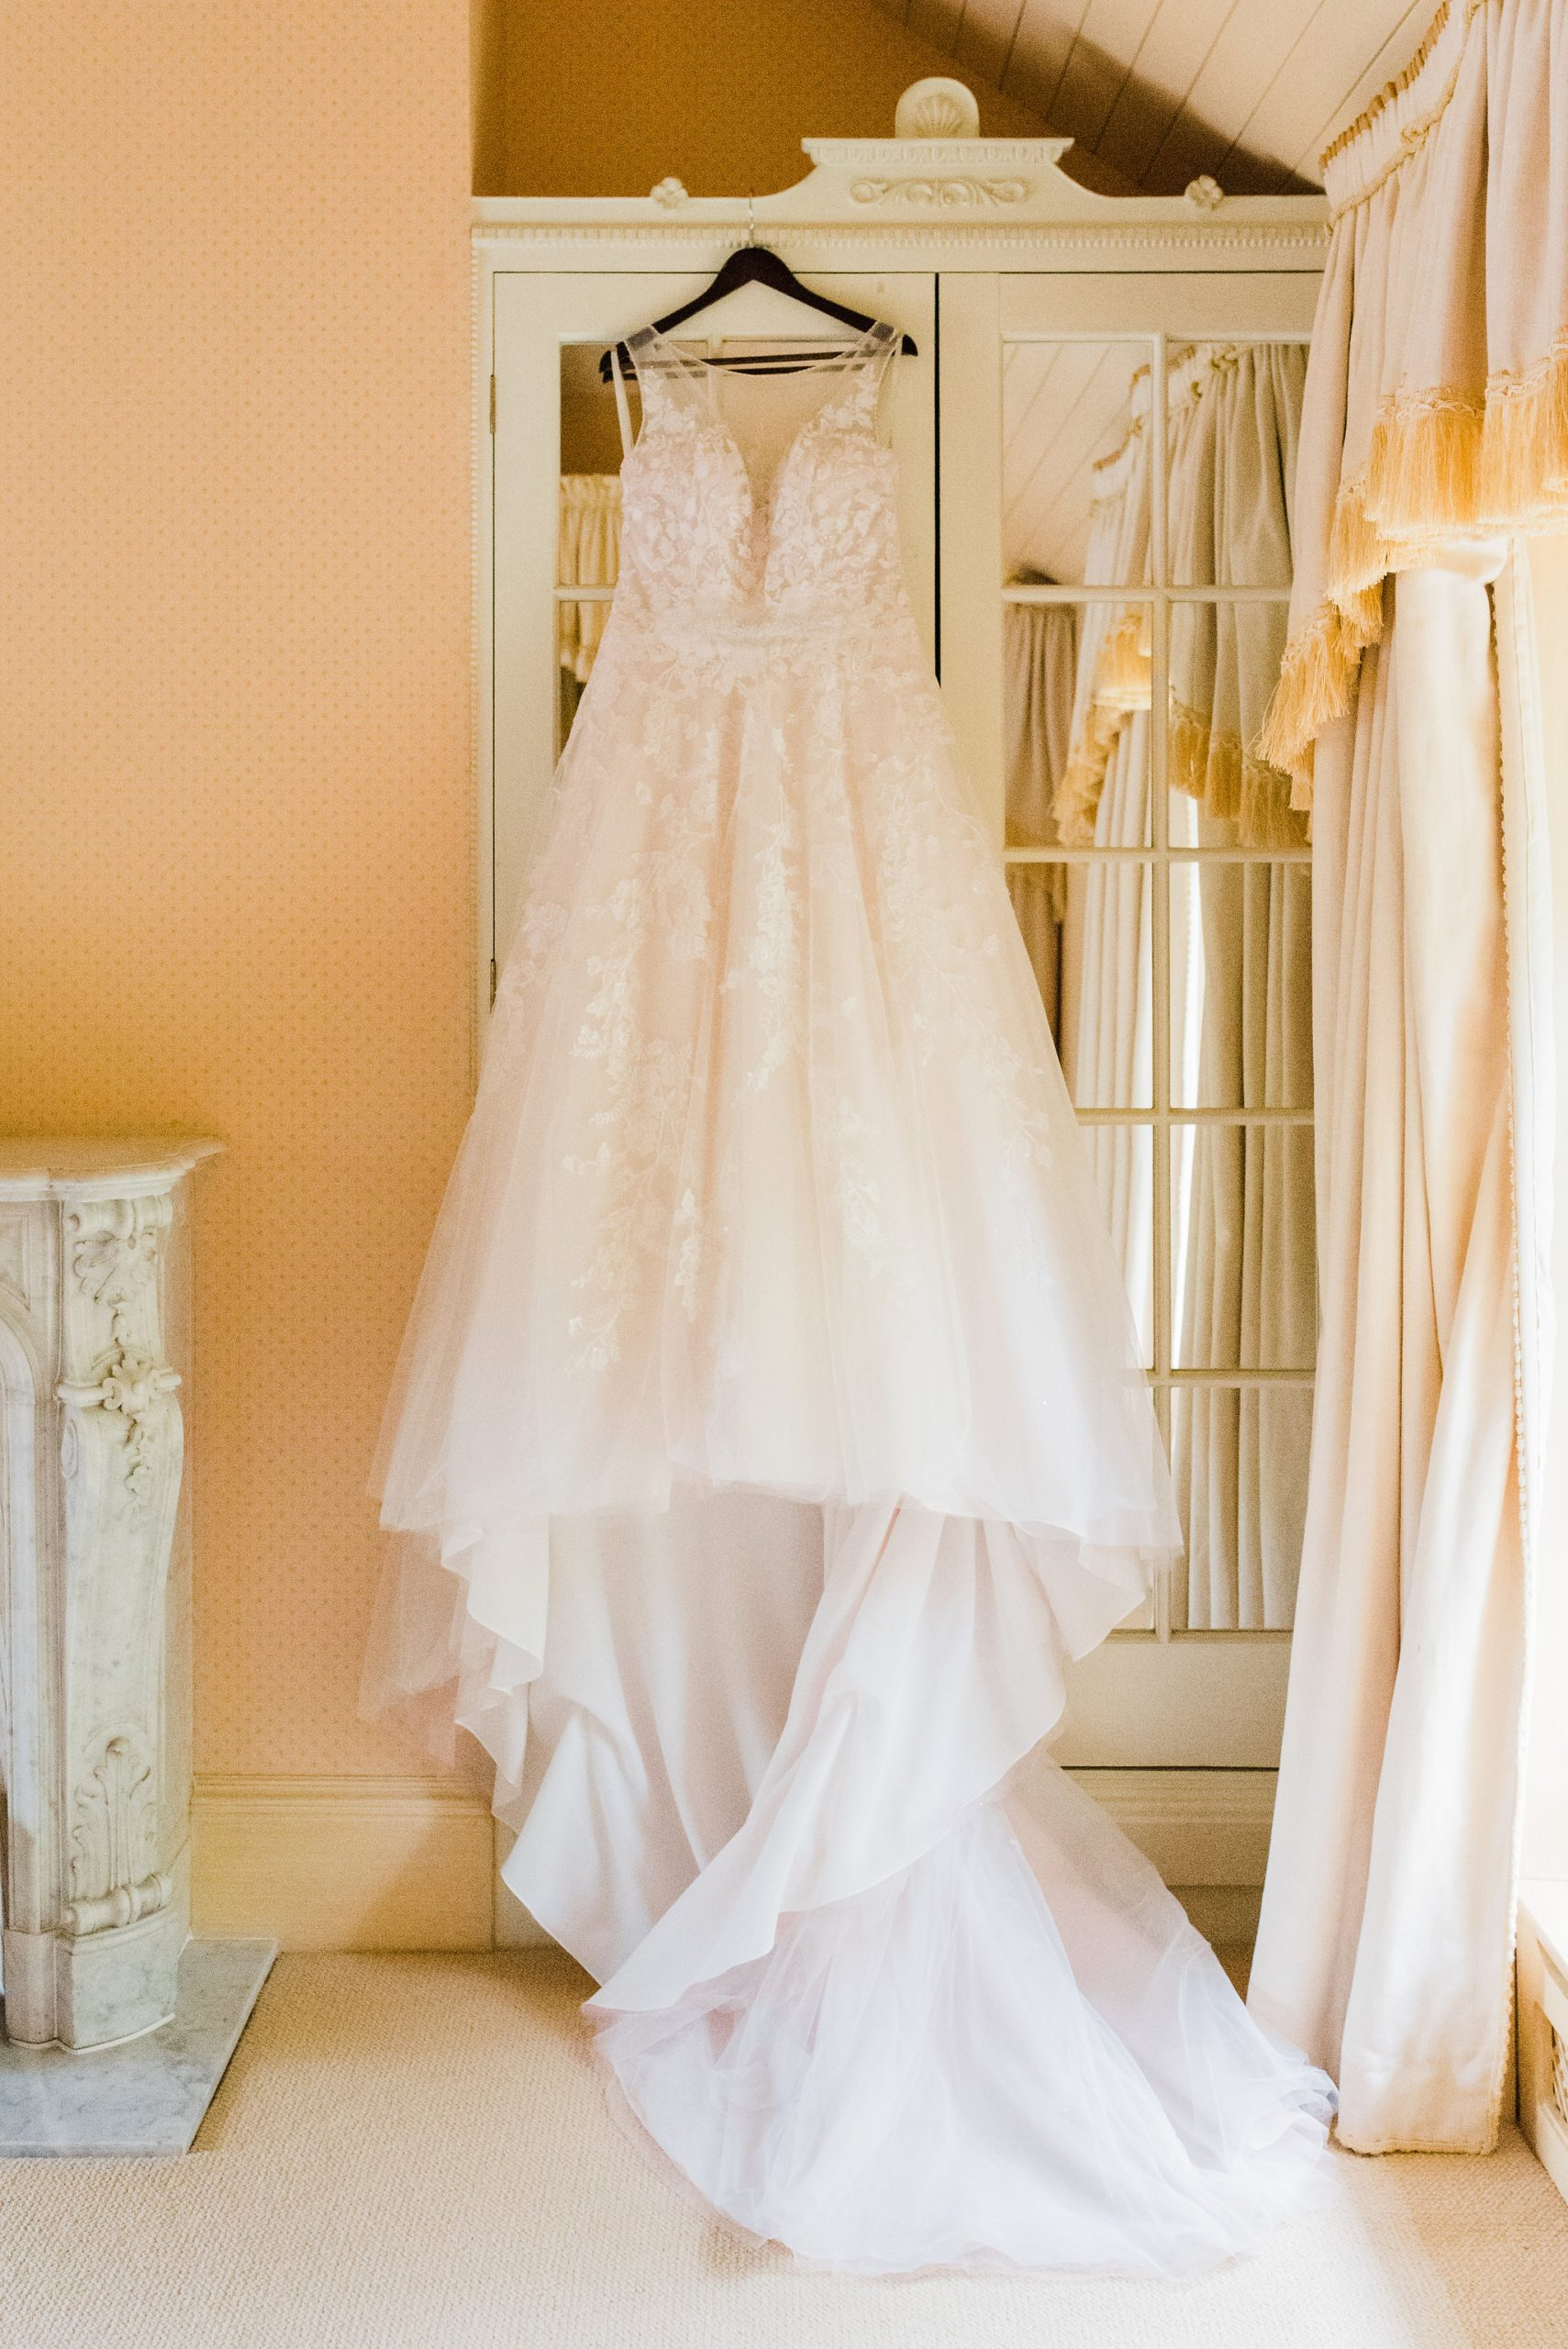 Wedding dress hanging up on a wardrobe